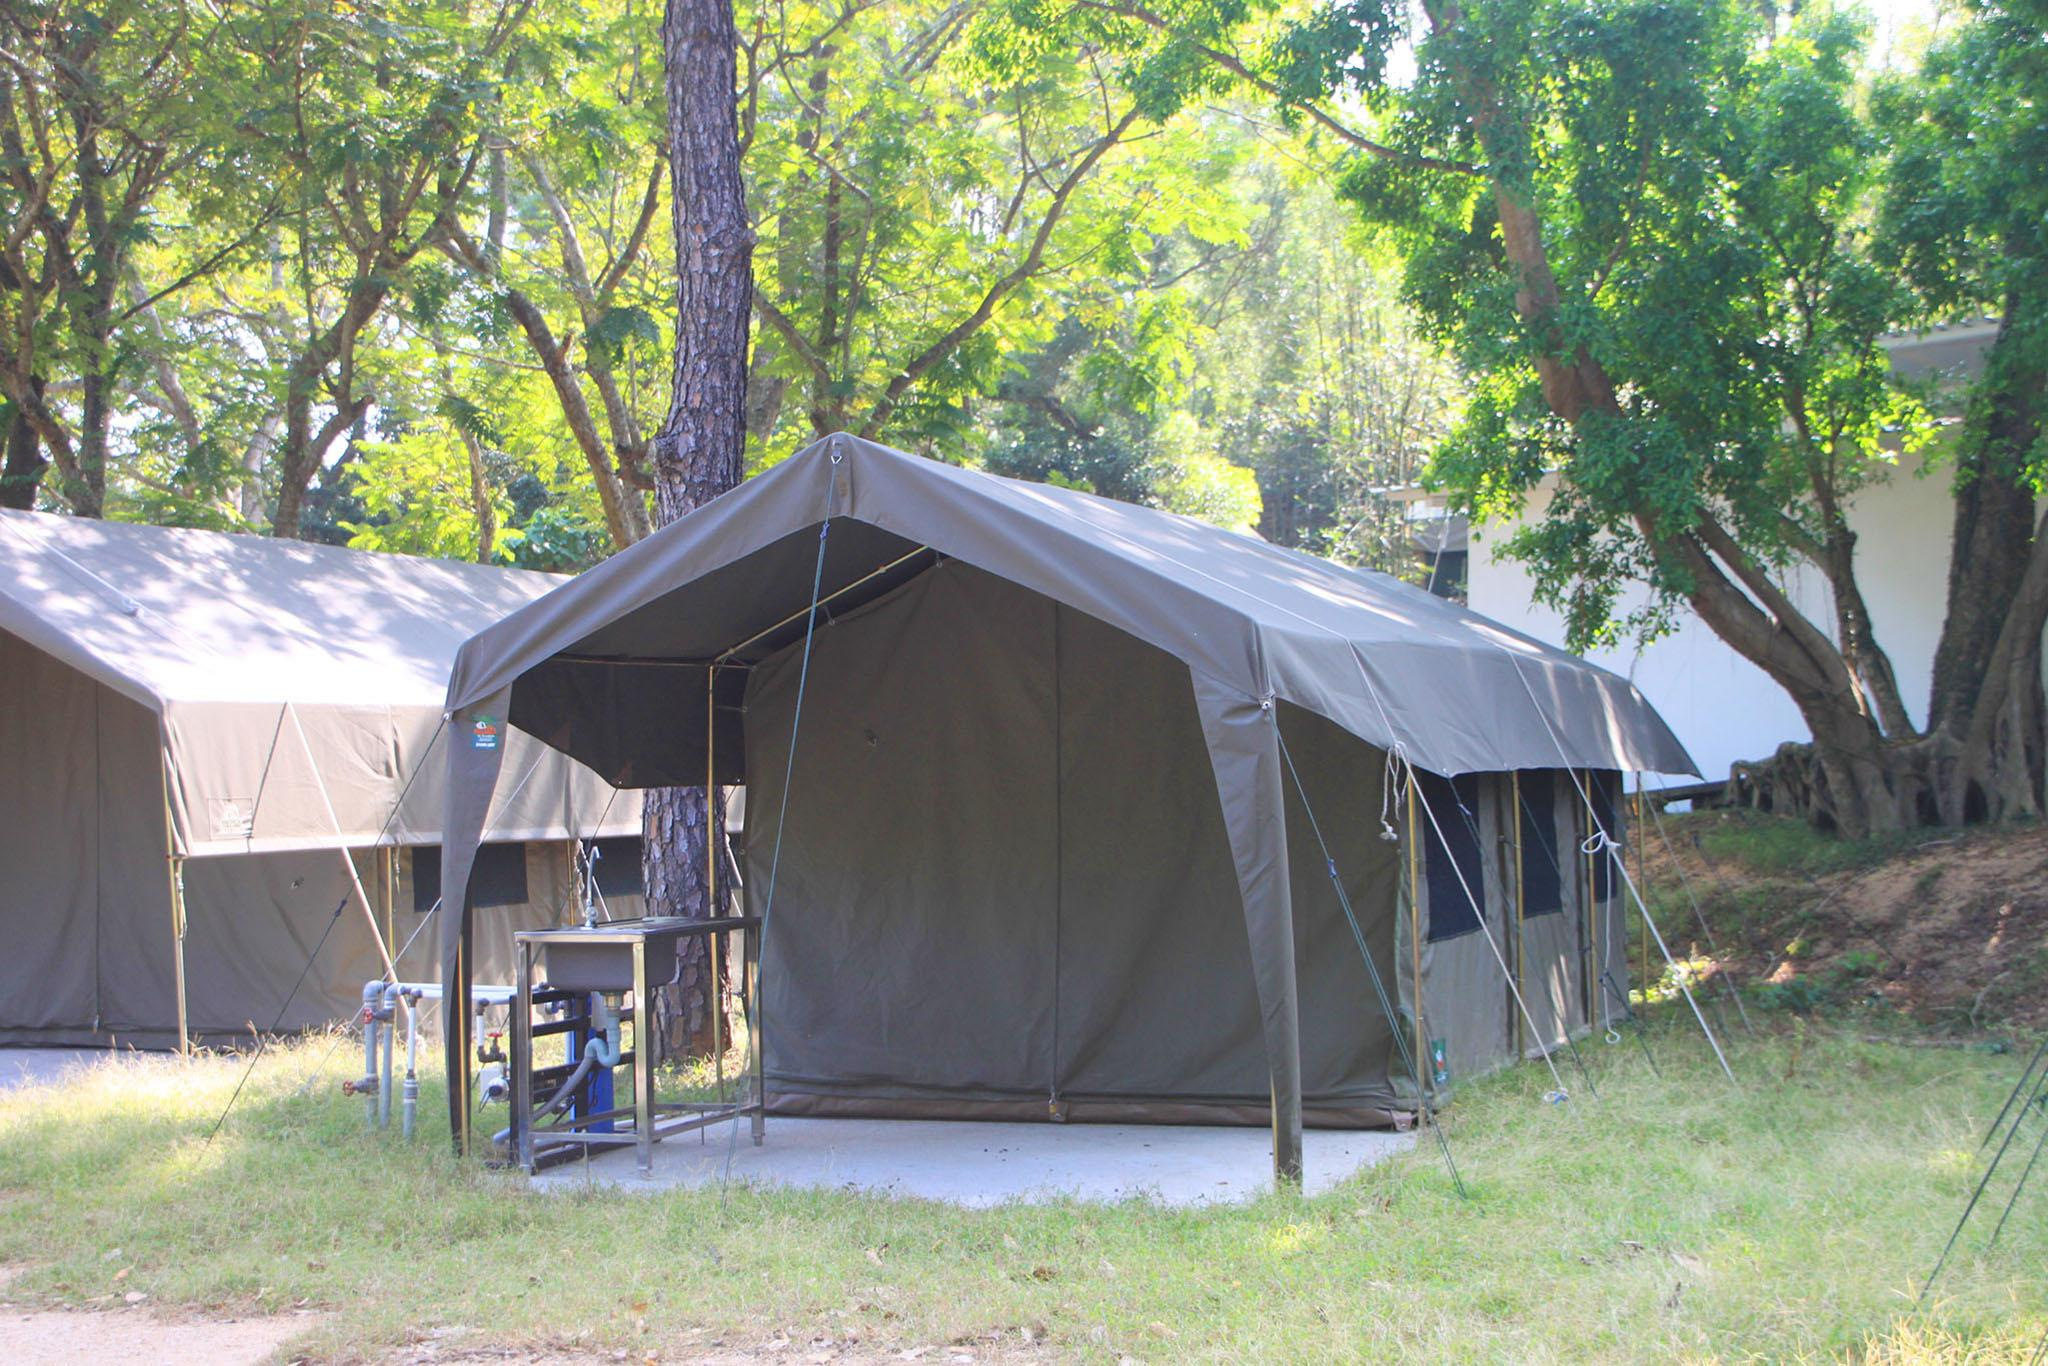 African Safari Tent (XL)max 9 ppl & Best Price on African Safari Tent (XL)max 9 ppl in Hong Kong + Reviews